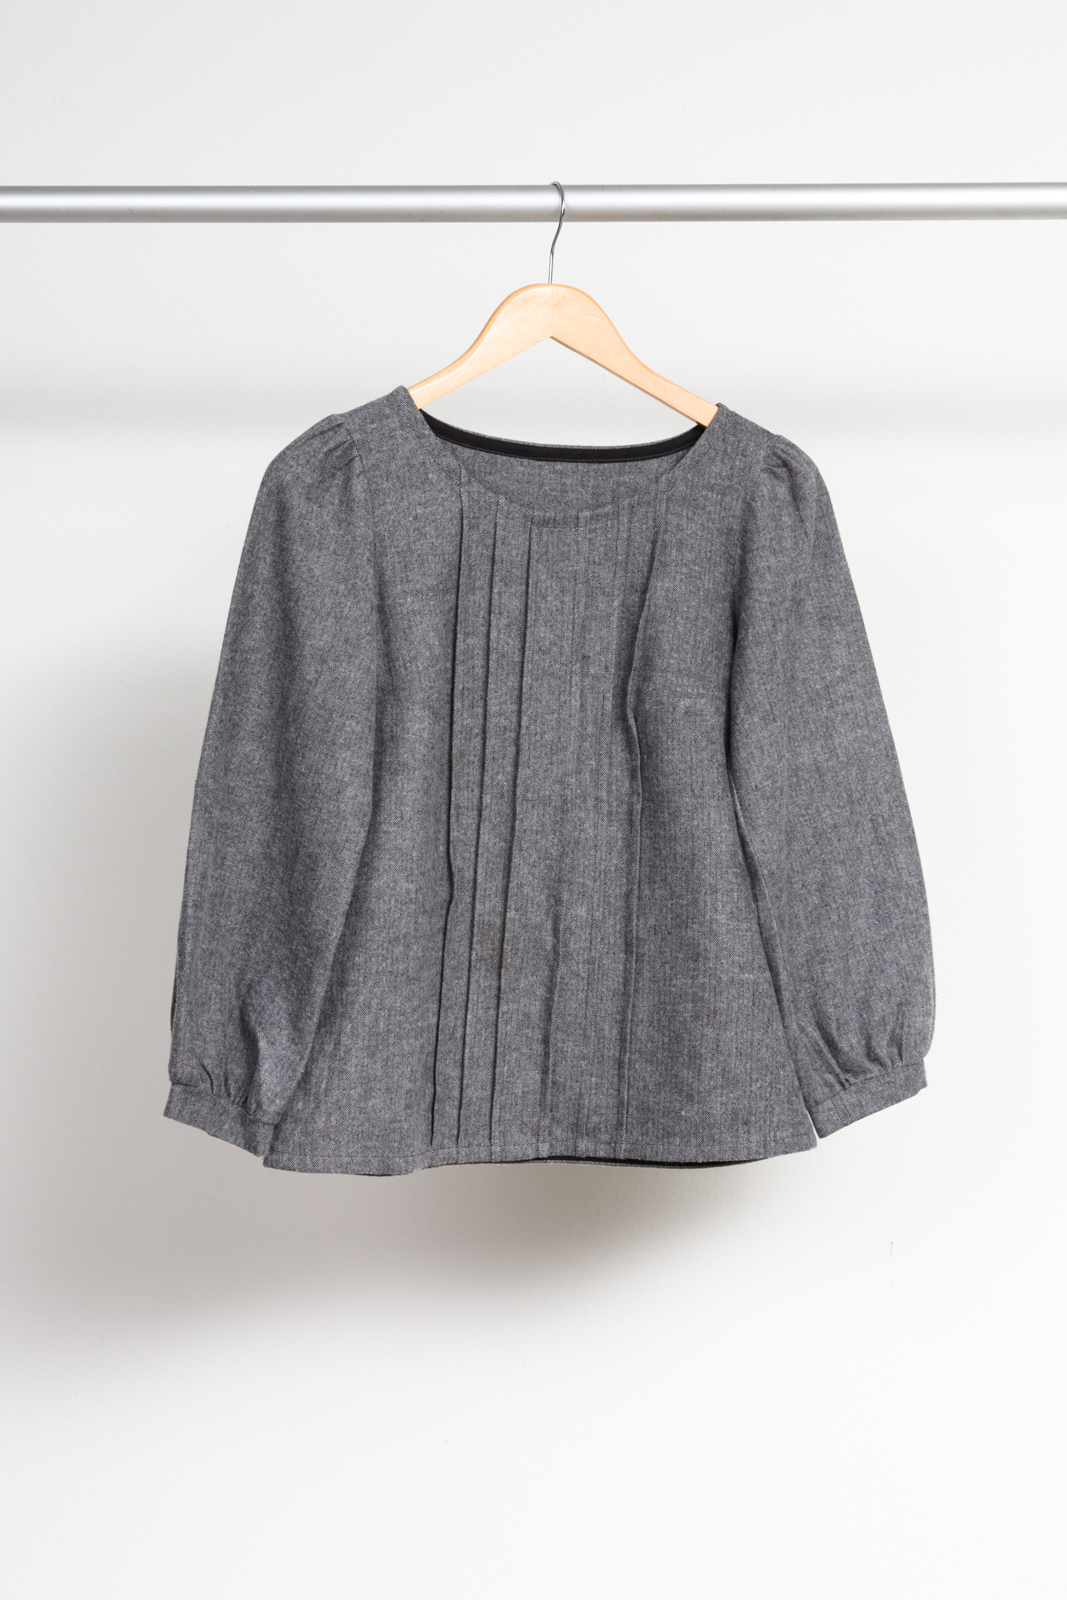 JOSEPHINE BLOUSE BY MADE BY RAE ,  SHETLAND FLANNEL